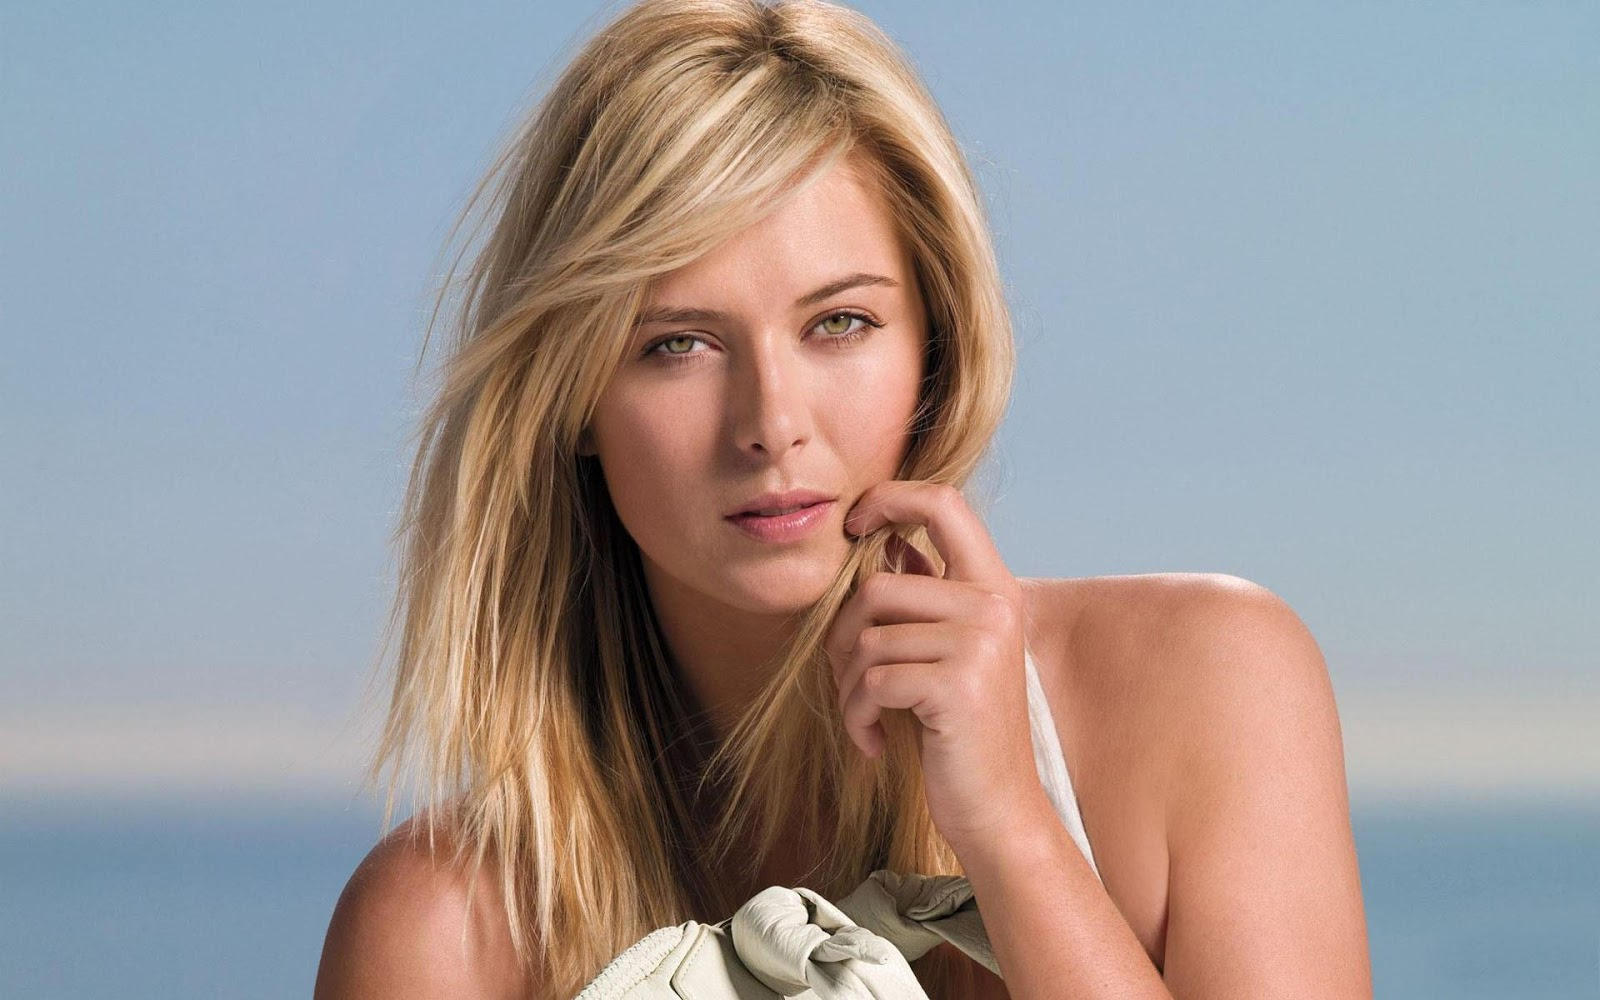 Maria Sharapova Beauty Wallpapers